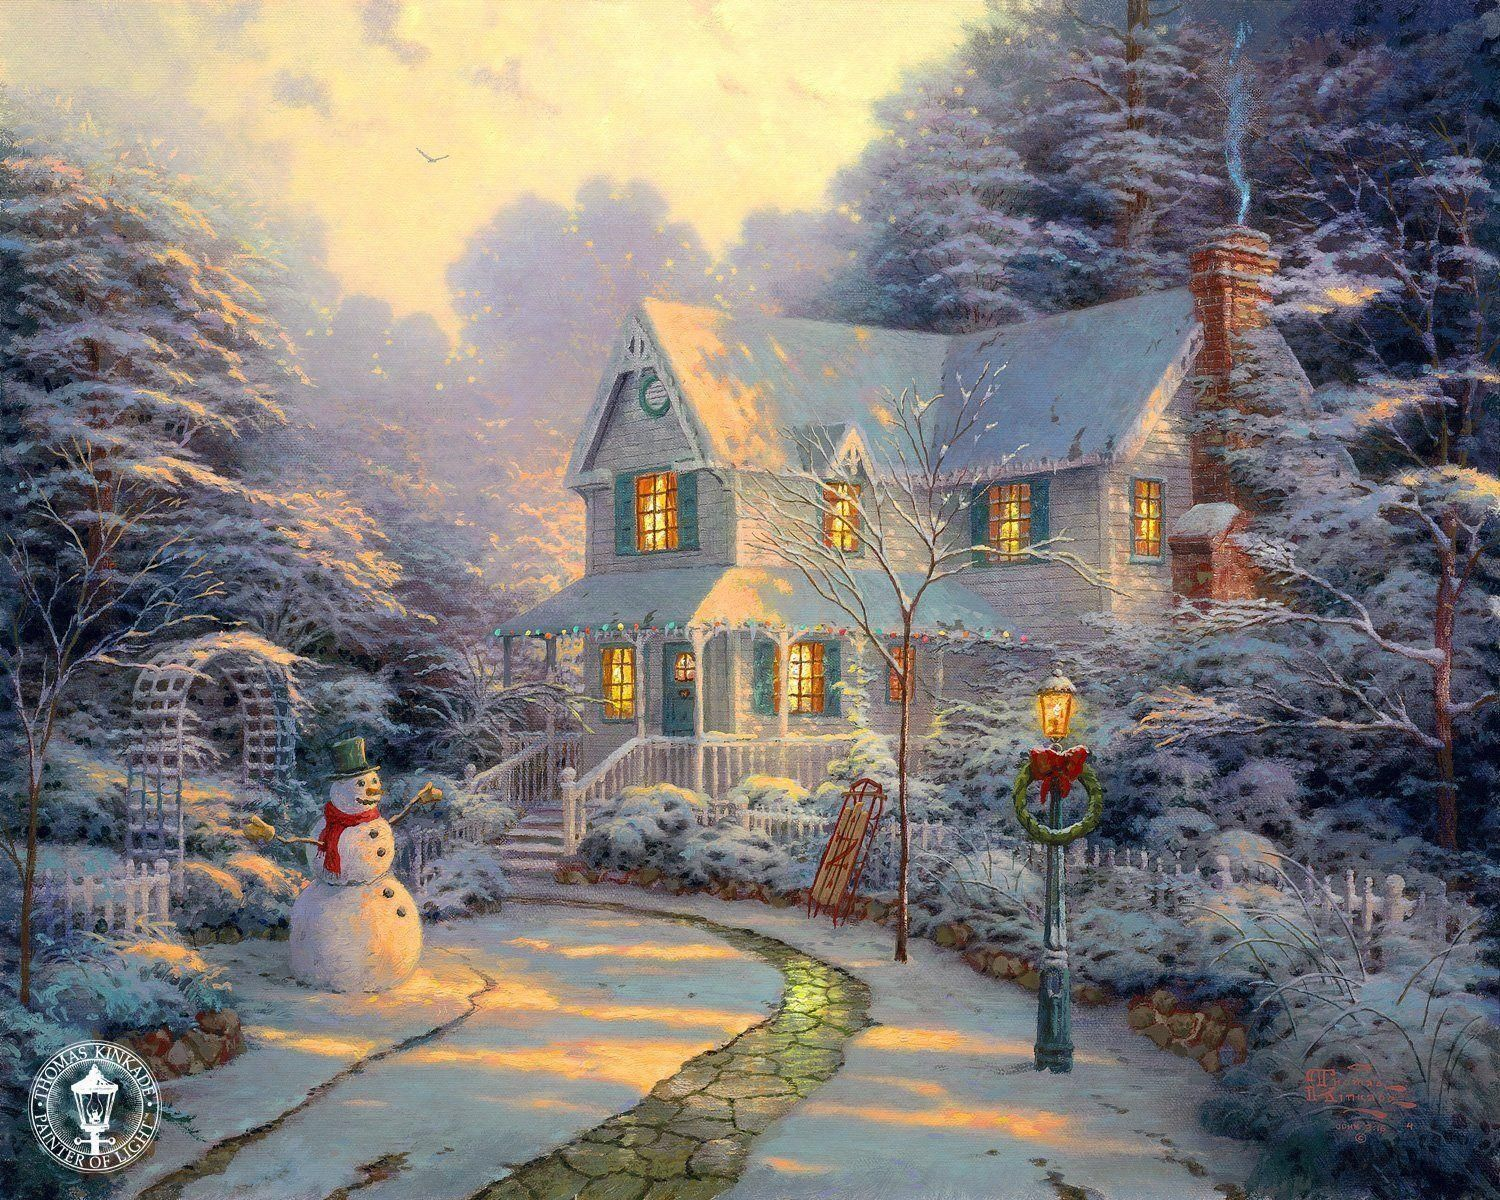 Pix For Thomas Kinkade Winter Scenes Wallpaper Thomas Kinkade Paintings Kinkade Paintings Thomas Kinkade Christmas